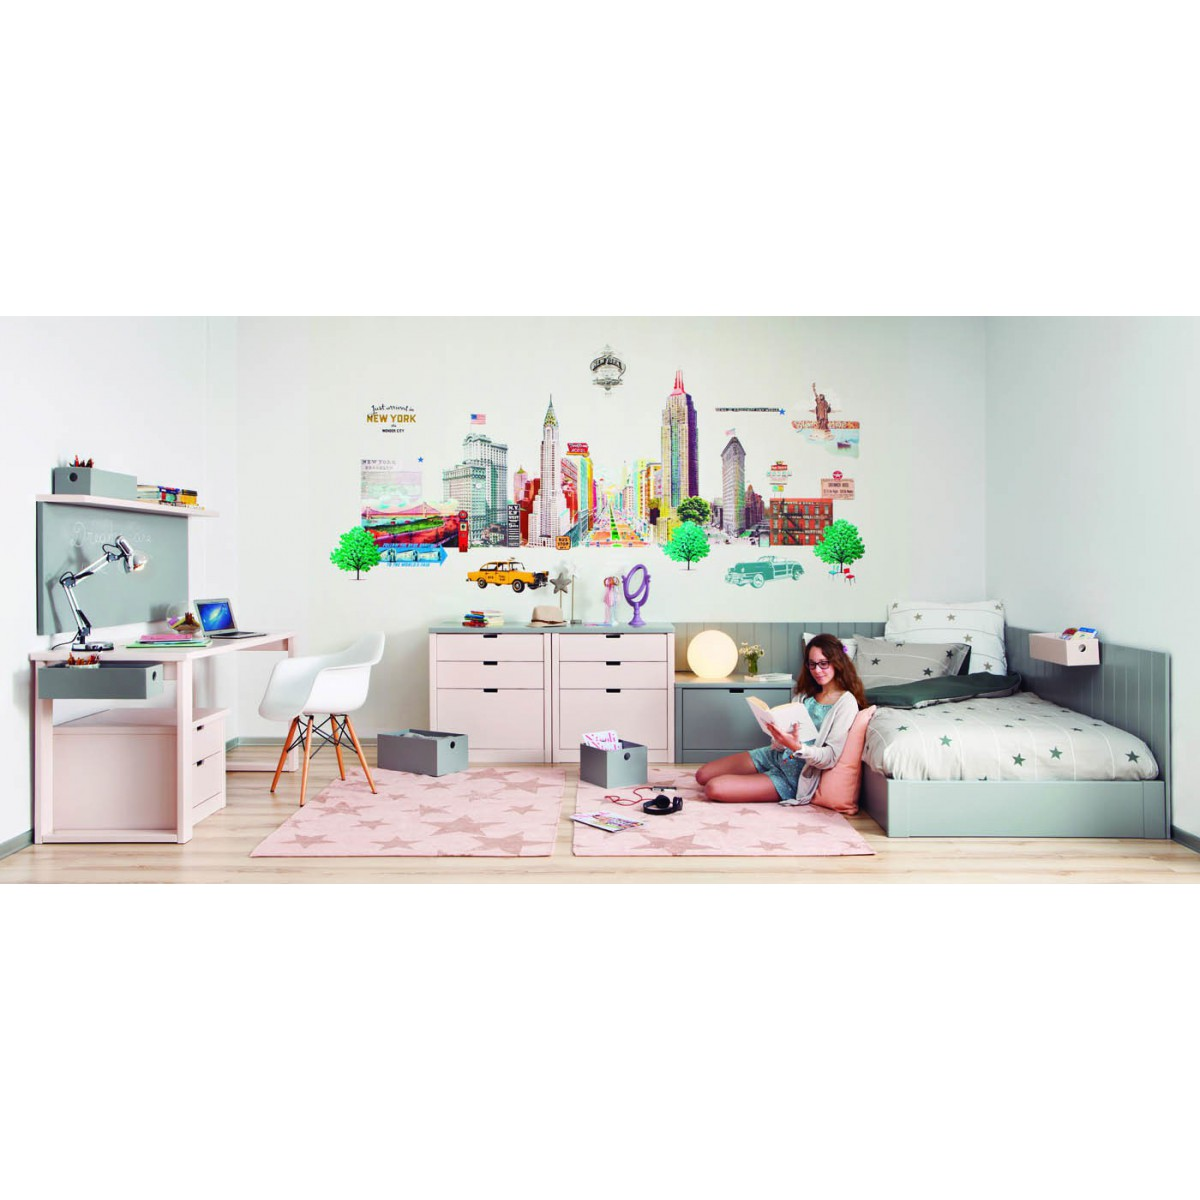 Chambre design et zen pour adolescents sign e asoral for Design japonais mobilier